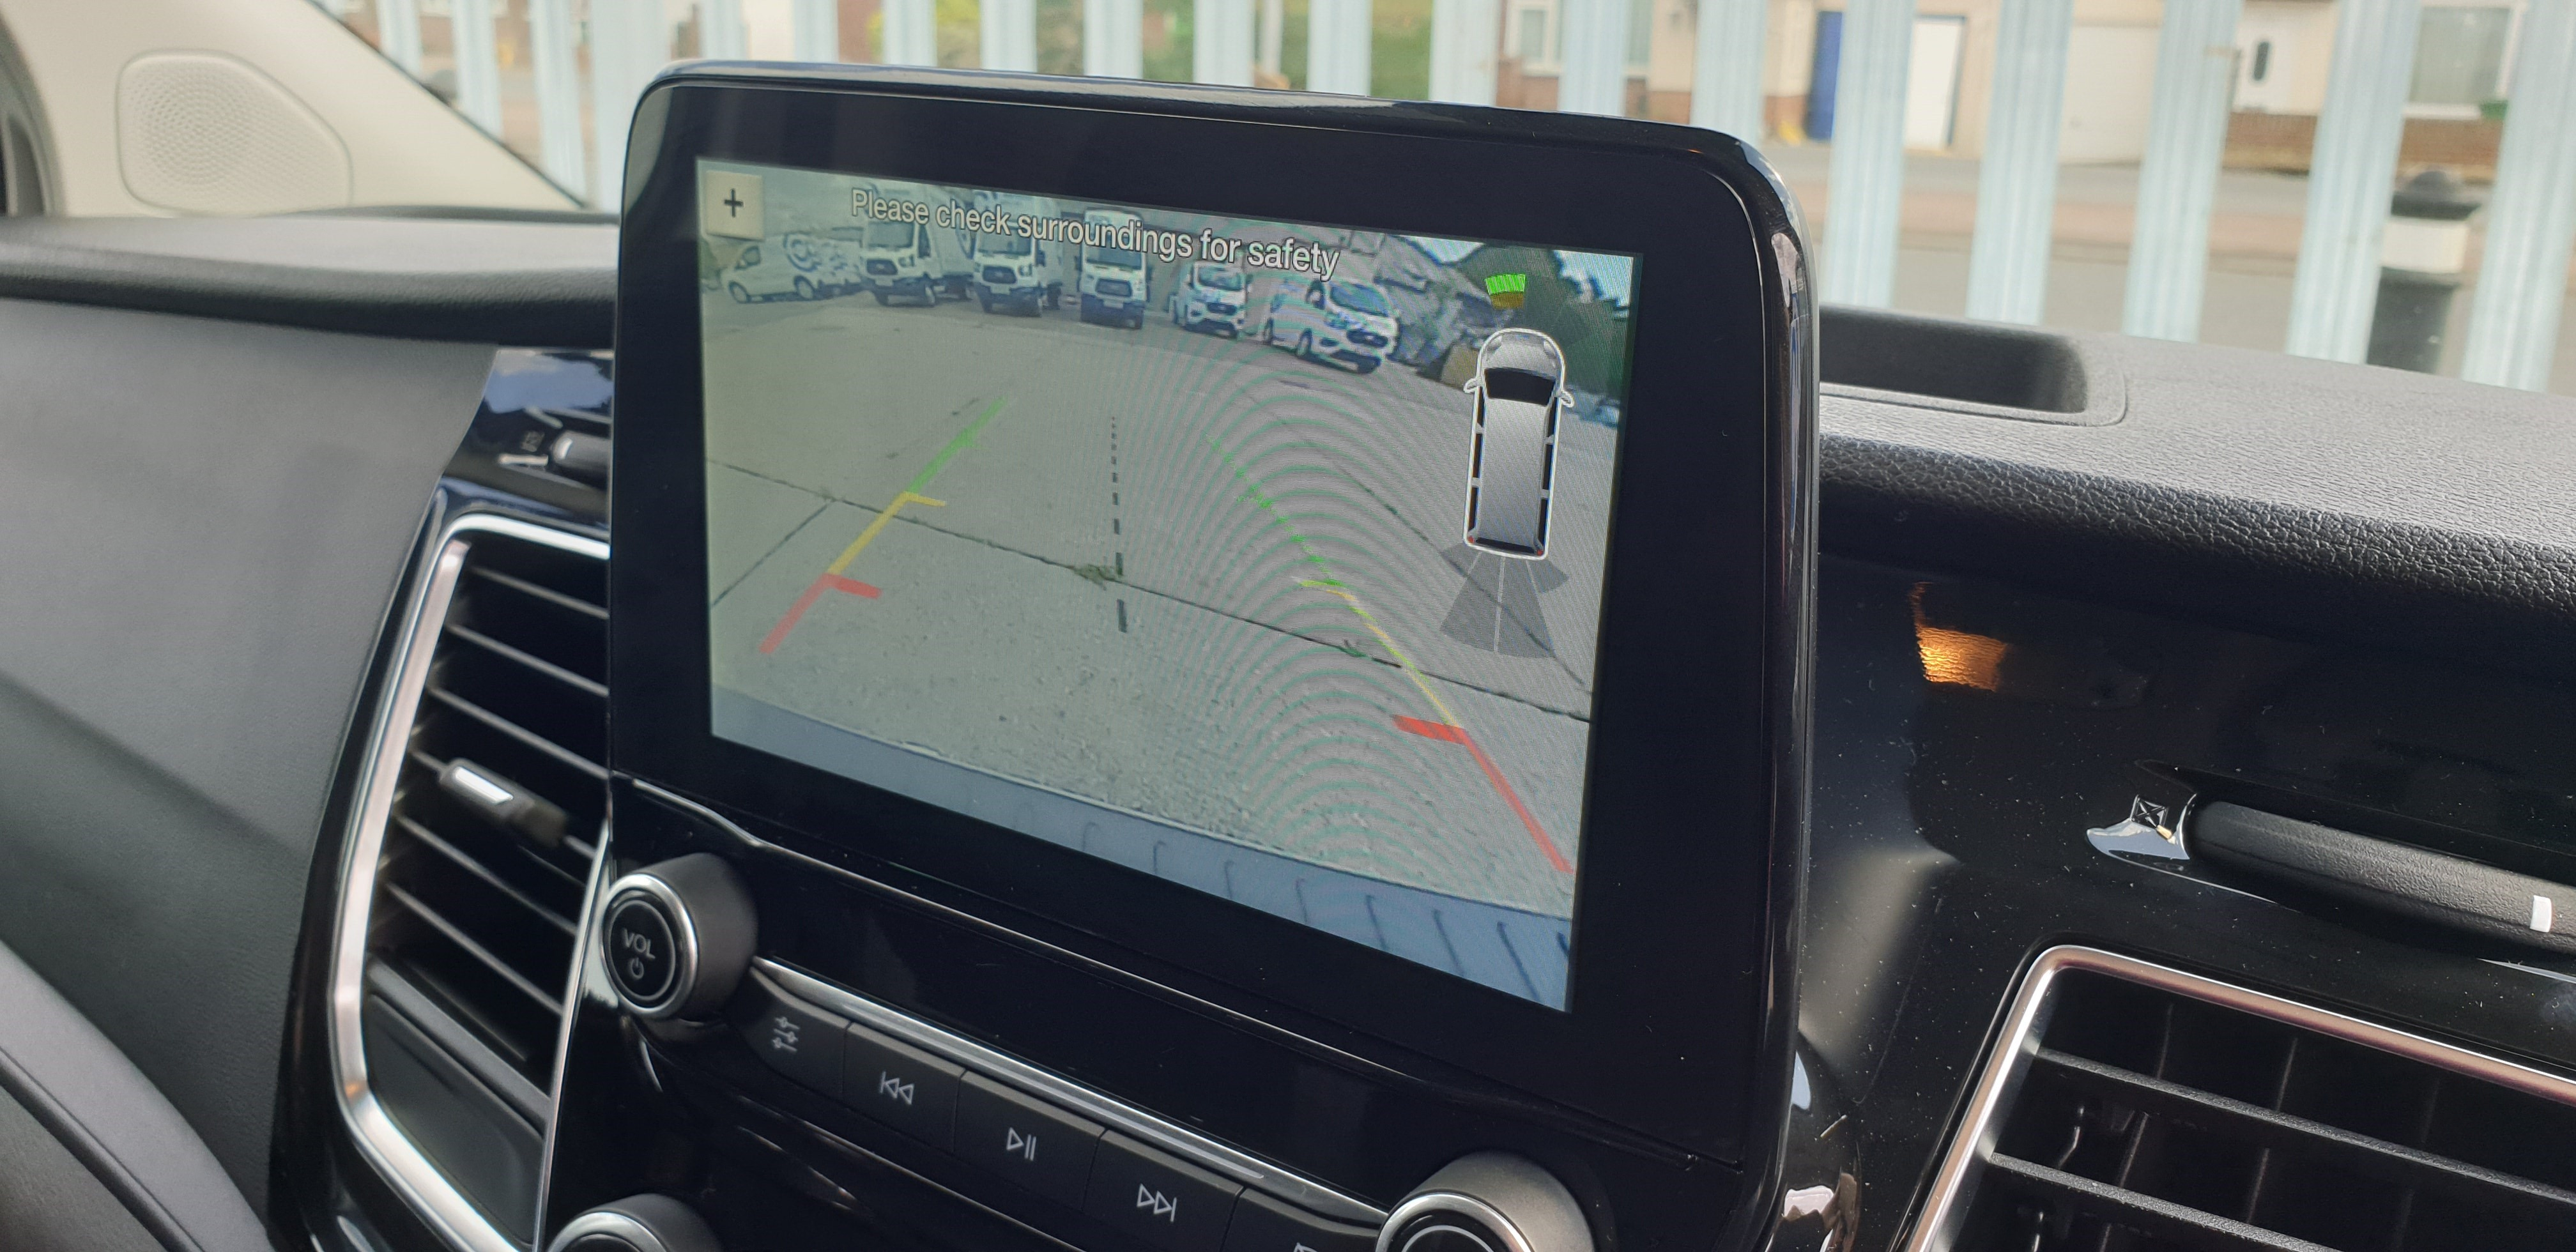 Rental vans with Reversing Cameras